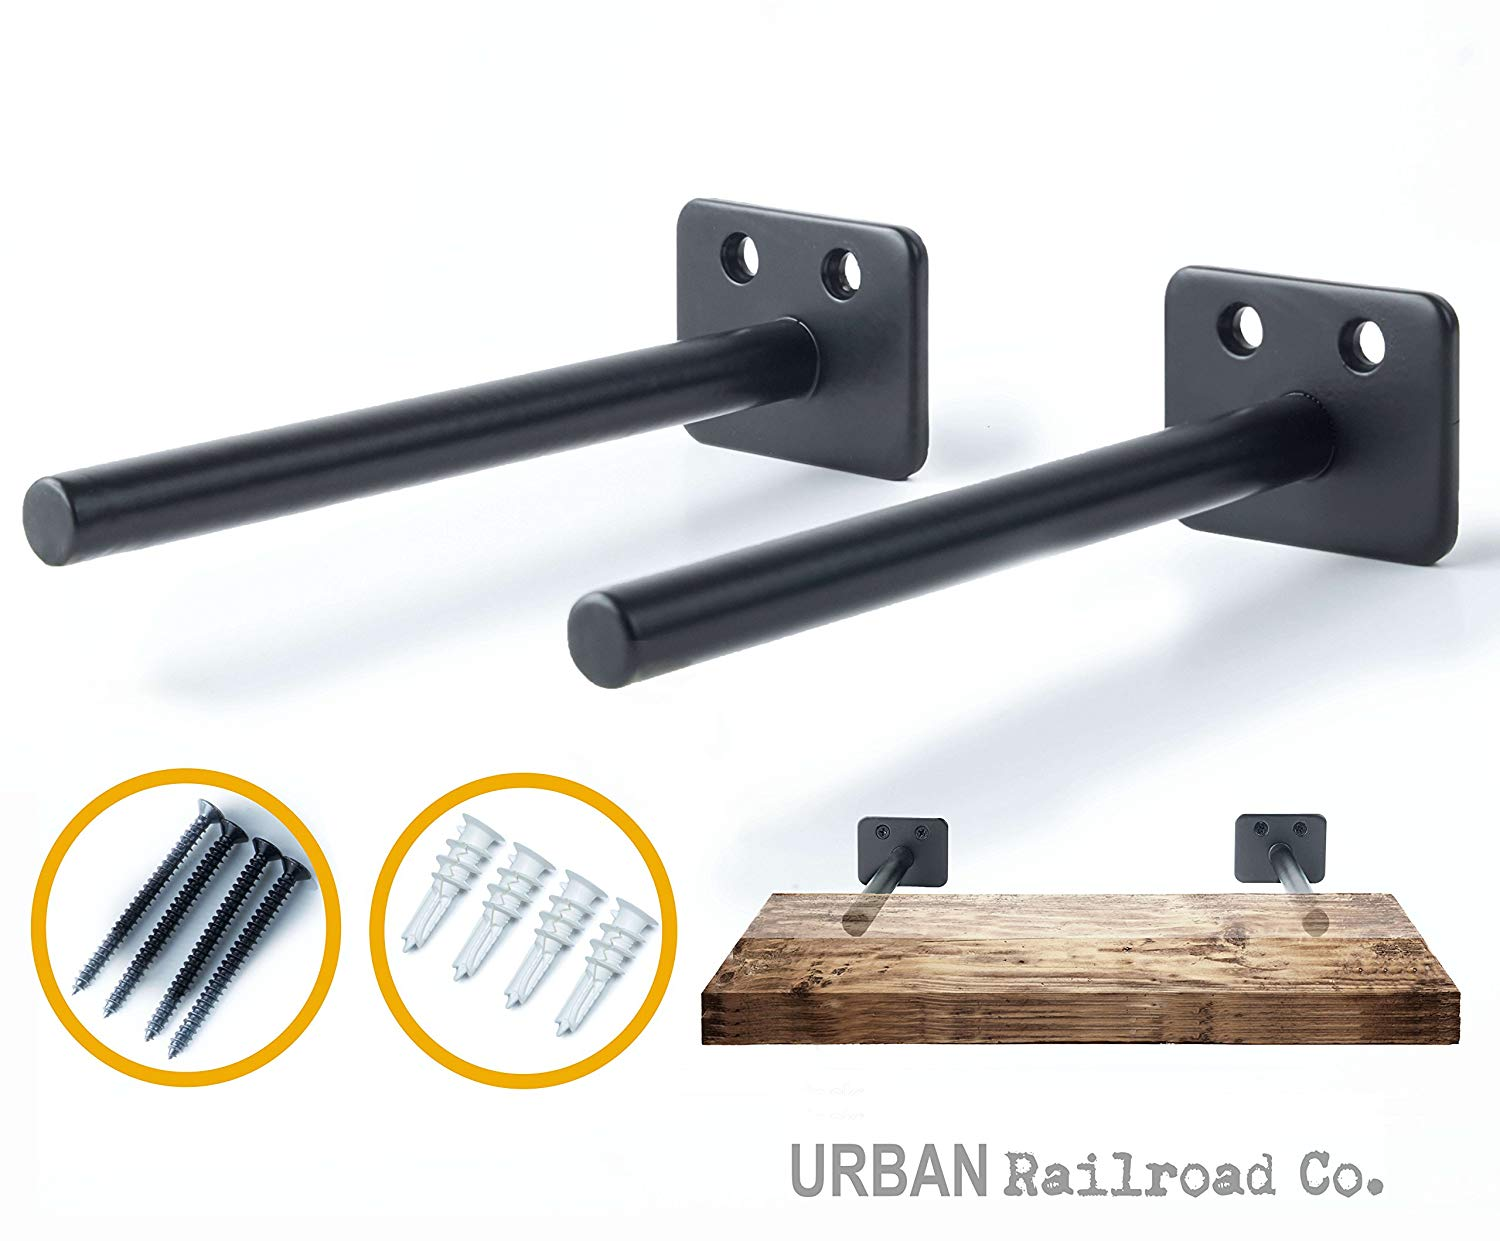 solid steel floating shelf brackets rod with post diameter powder coated finish rustproof blind supports flush fit hardware only garage improvements inch deep concealment beam